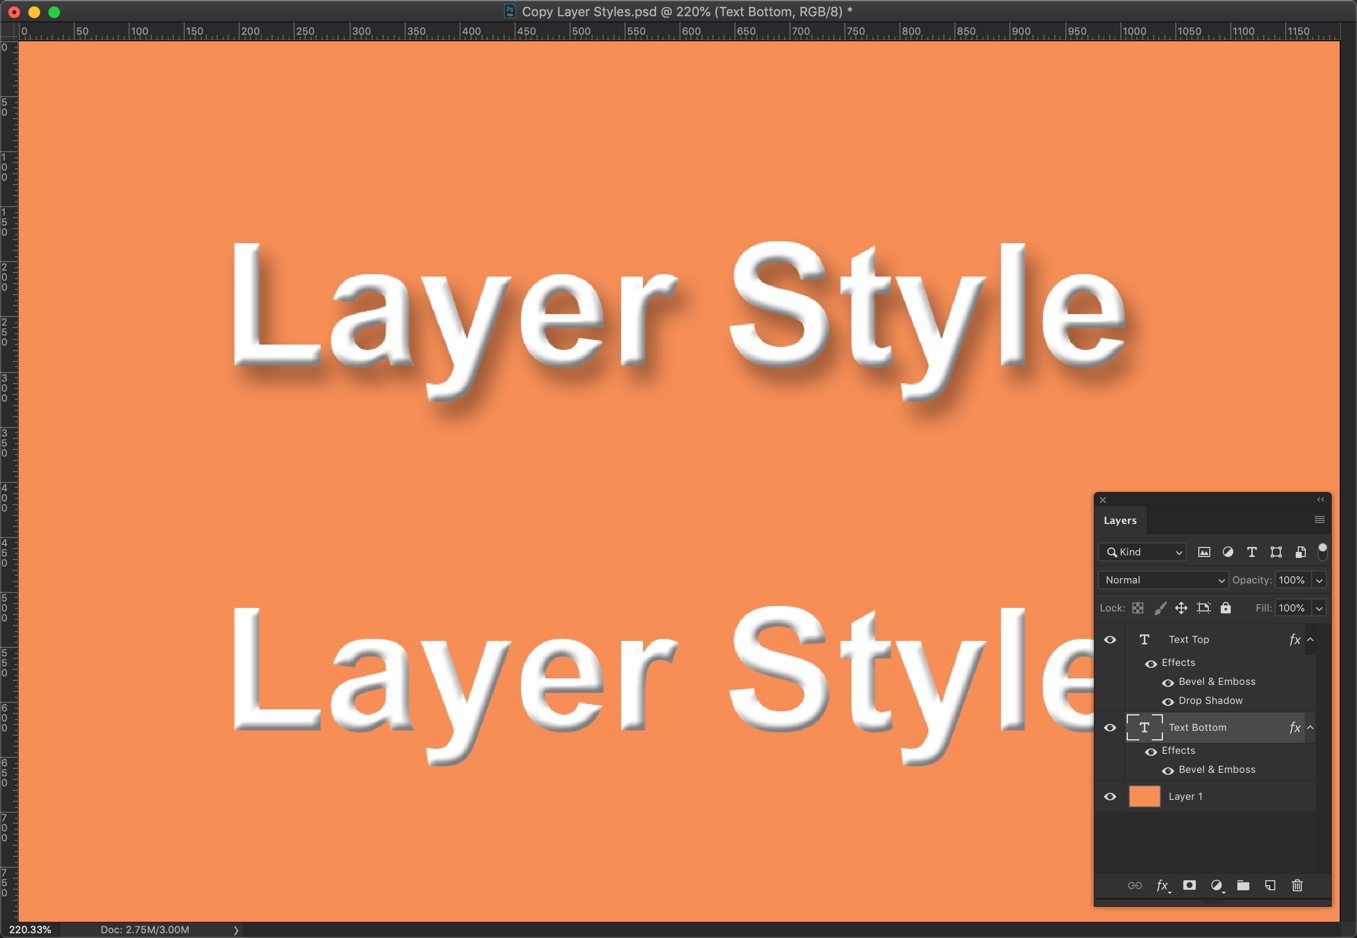 4-2 - Quick Tip: Copy Layer Styles in Photoshop